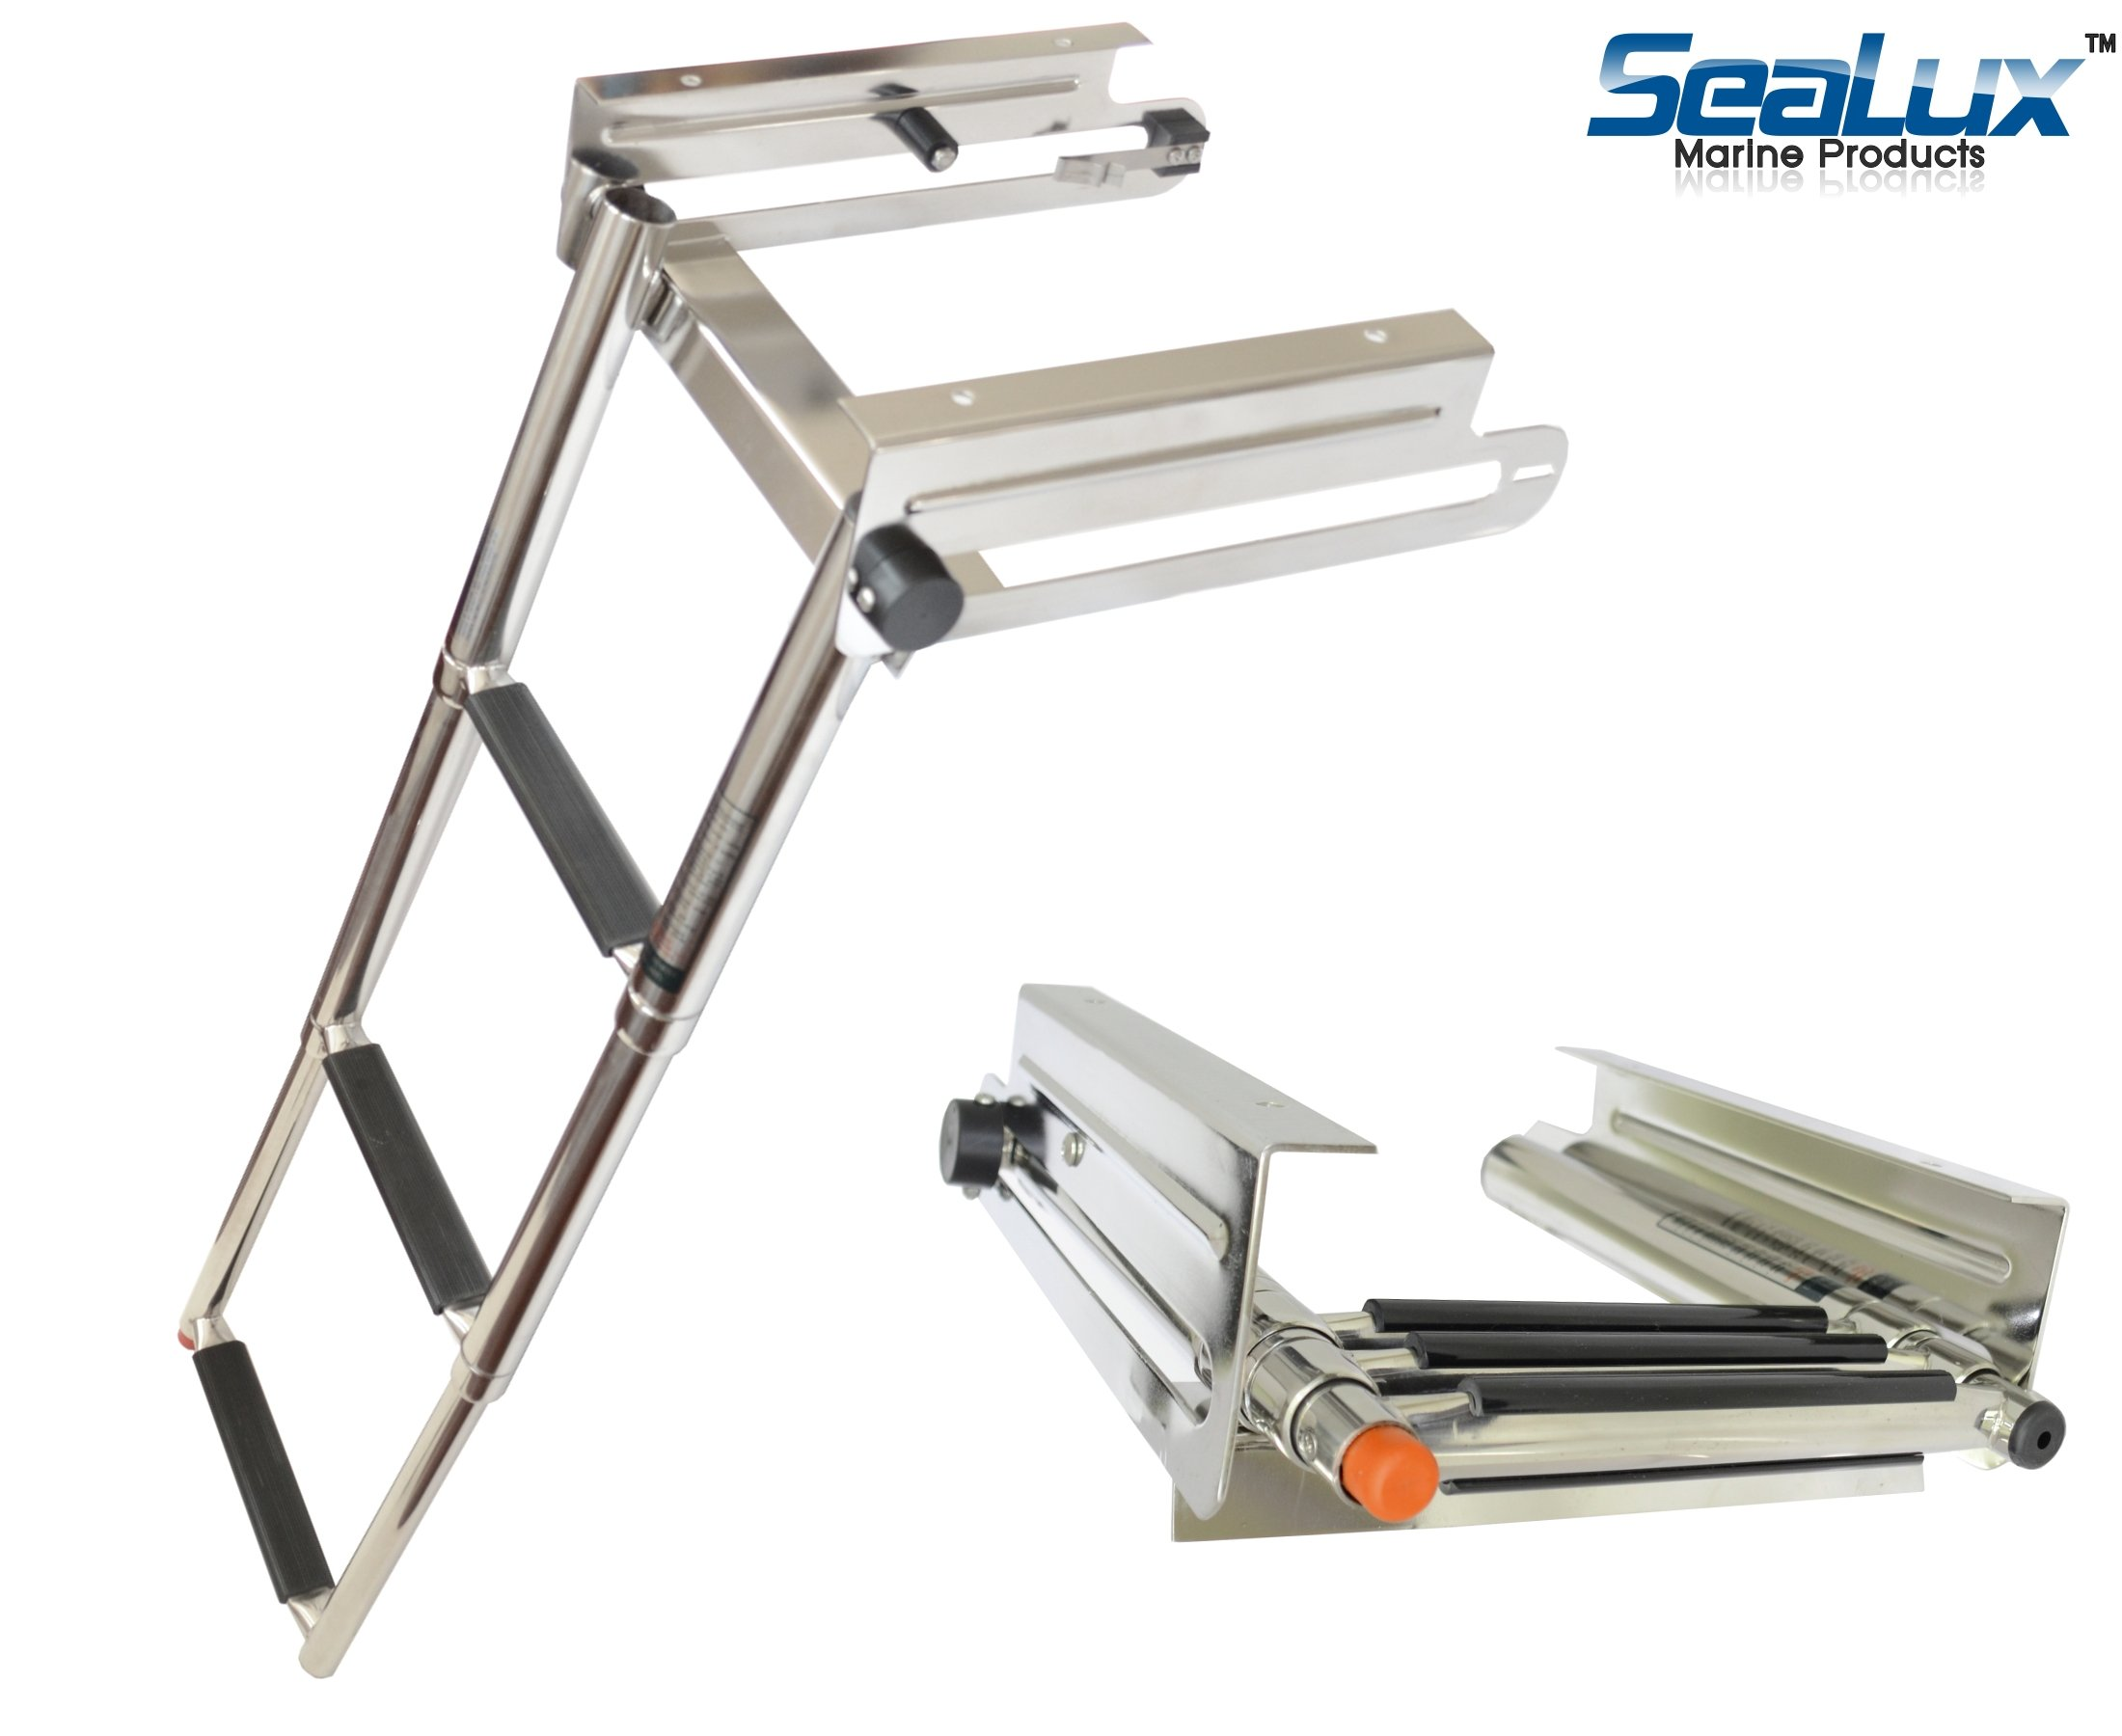 SeaLux Stainless Steel Pop-N-Lock Boarding 3-Step Undermount Sliding Marine Boat Telescoping Swim Ladder by SeaLux Marine Products